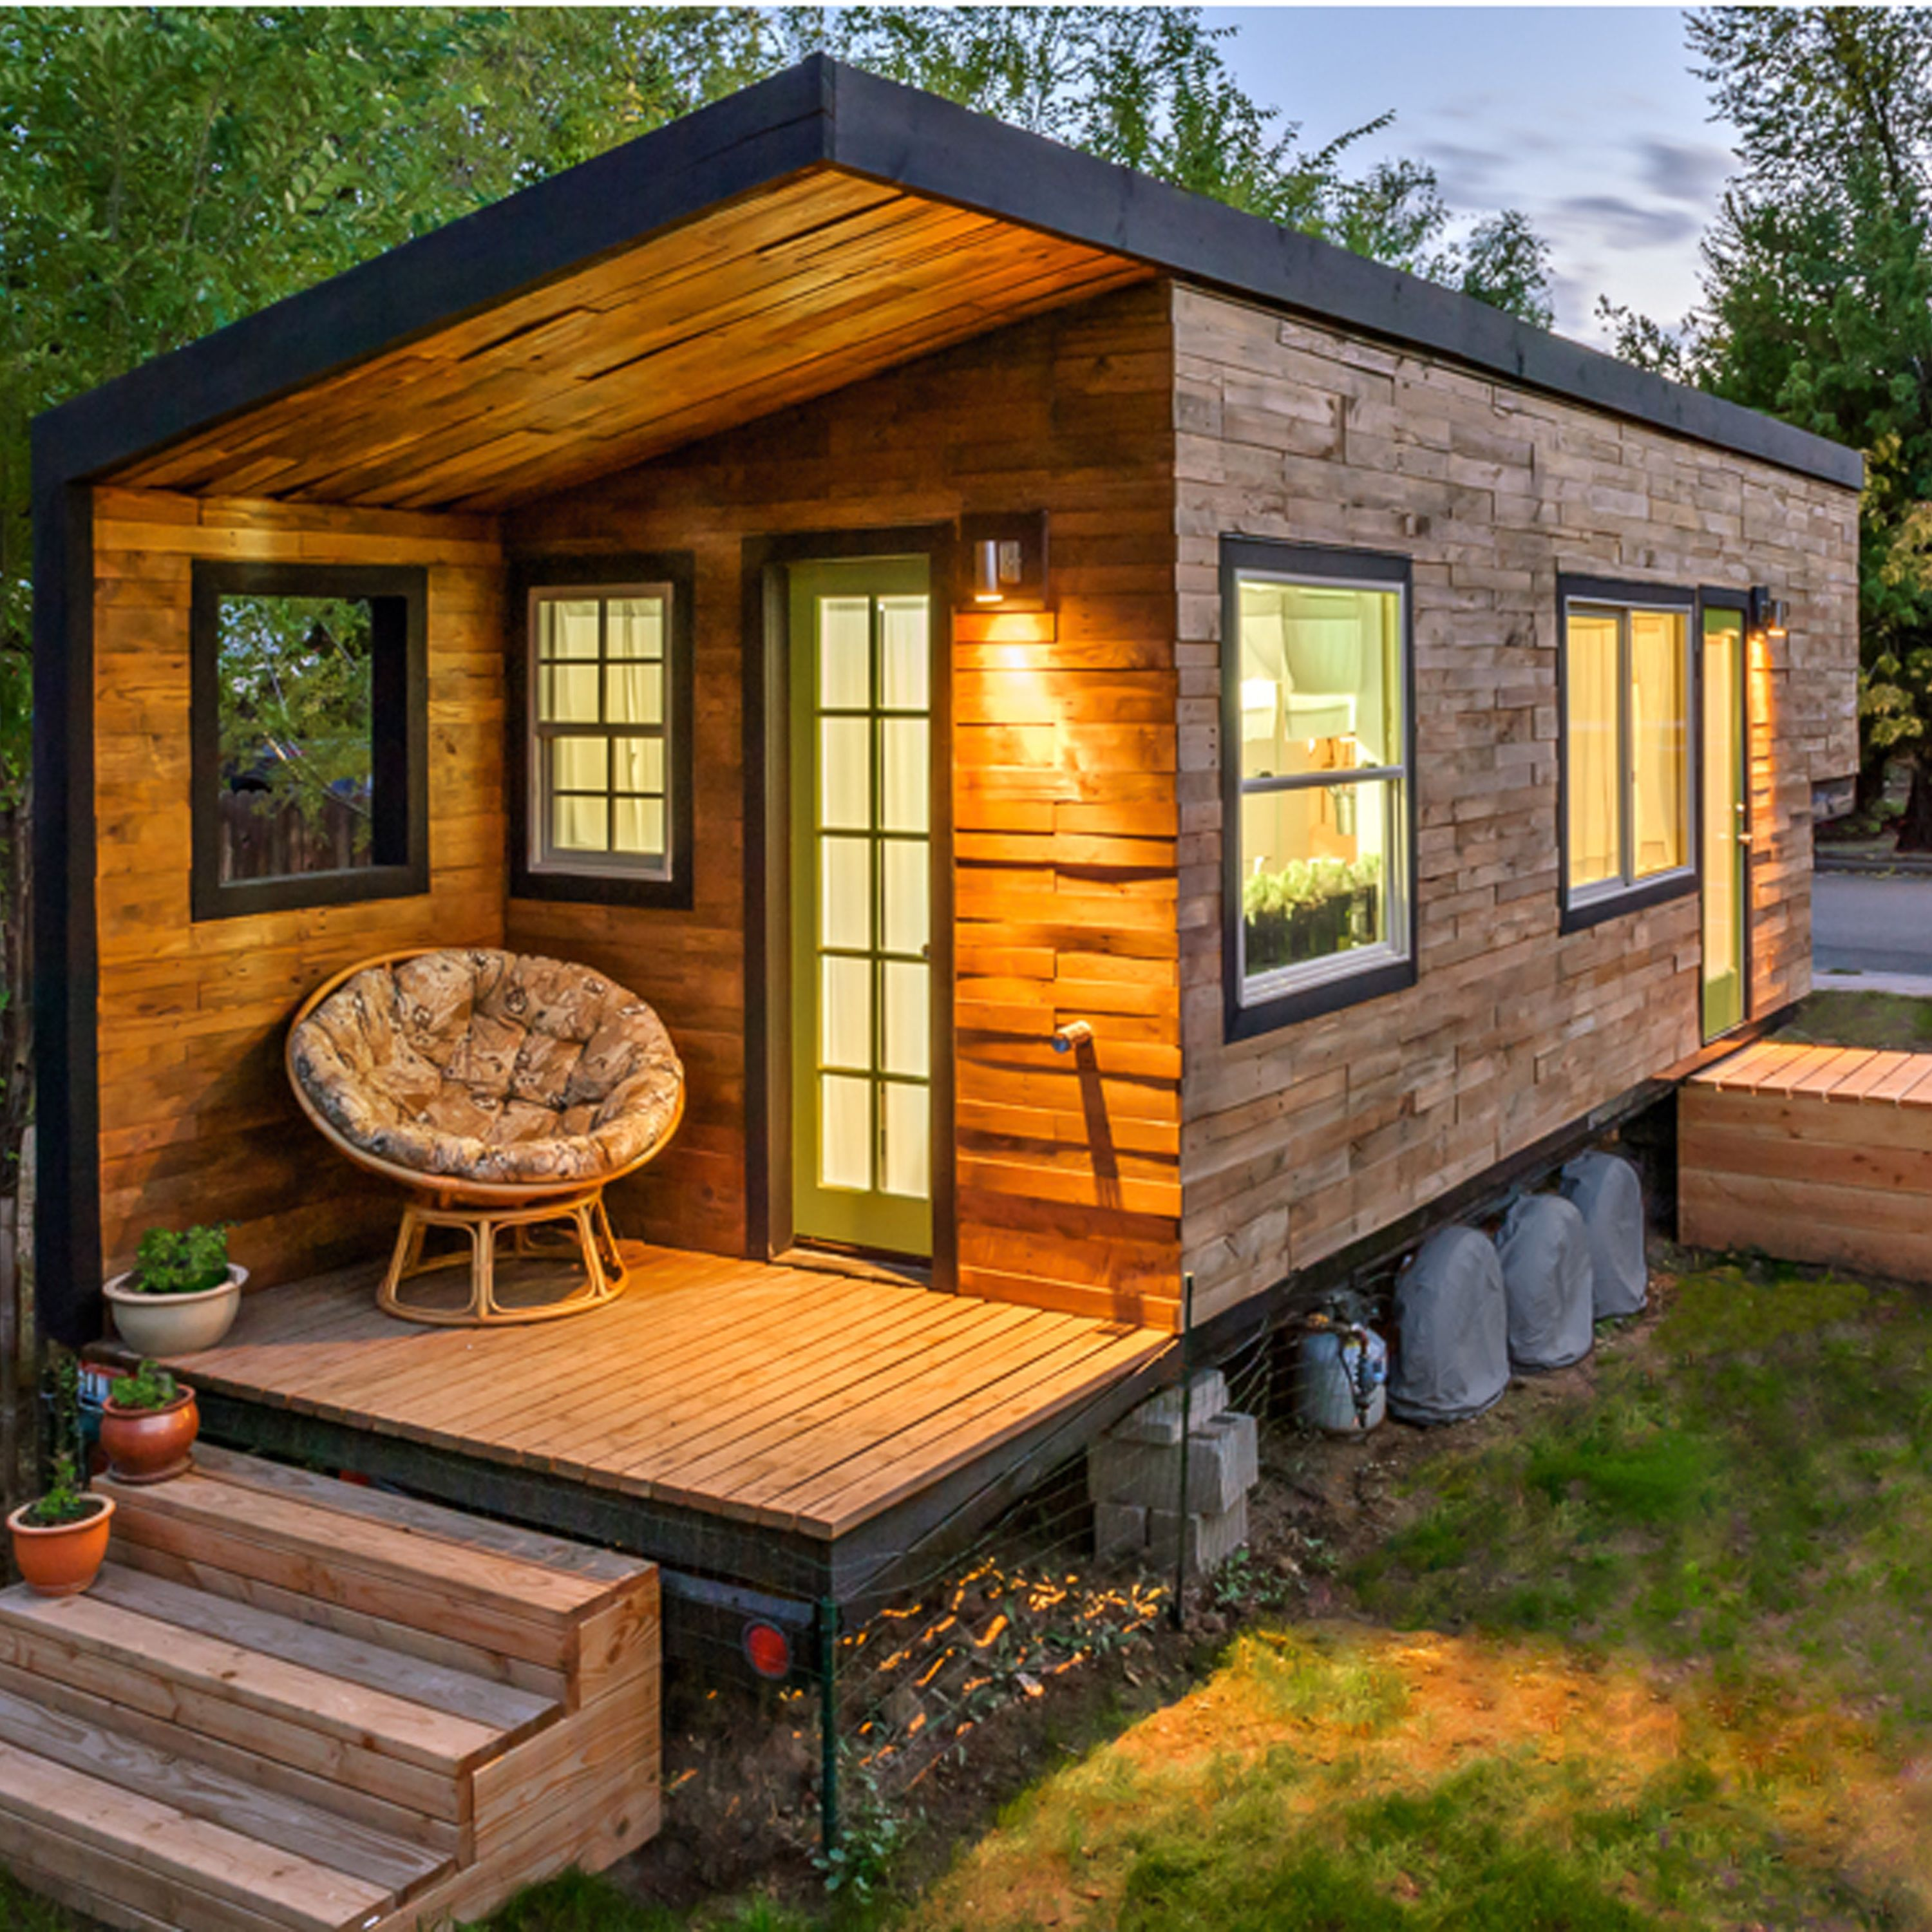 """<p dir=""""ltr""""><span>This 196-square-foot house near Boise, Idaho, is home to Macy Miller, her partner James, their daughter Hazel, and their Great Dane, Denver. A 27-year-old architect, Macy designed the home from scratch and built it on a 24-foot flatbed with help from friends and family. Clad in siding made of recycled pallet wood, the minimalist home is flooded with light and feels spacious despite its size. Hidden storage under the bed, above the pantry, and behind the fridge are contrasted with open shelving in the kitchen to make the space feel bigger. In total, Macy spent about $11,000 on her tiny house and is now able to live rent- and mortgage-free.</span></p><p dir=""""ltr""""><a href=""""http://minimotives.com/pro-photos/"""" target=""""_blank"""">Find out more about Macy's tiny house</a>.</p><p>&nbsp&#x3B;</p>"""